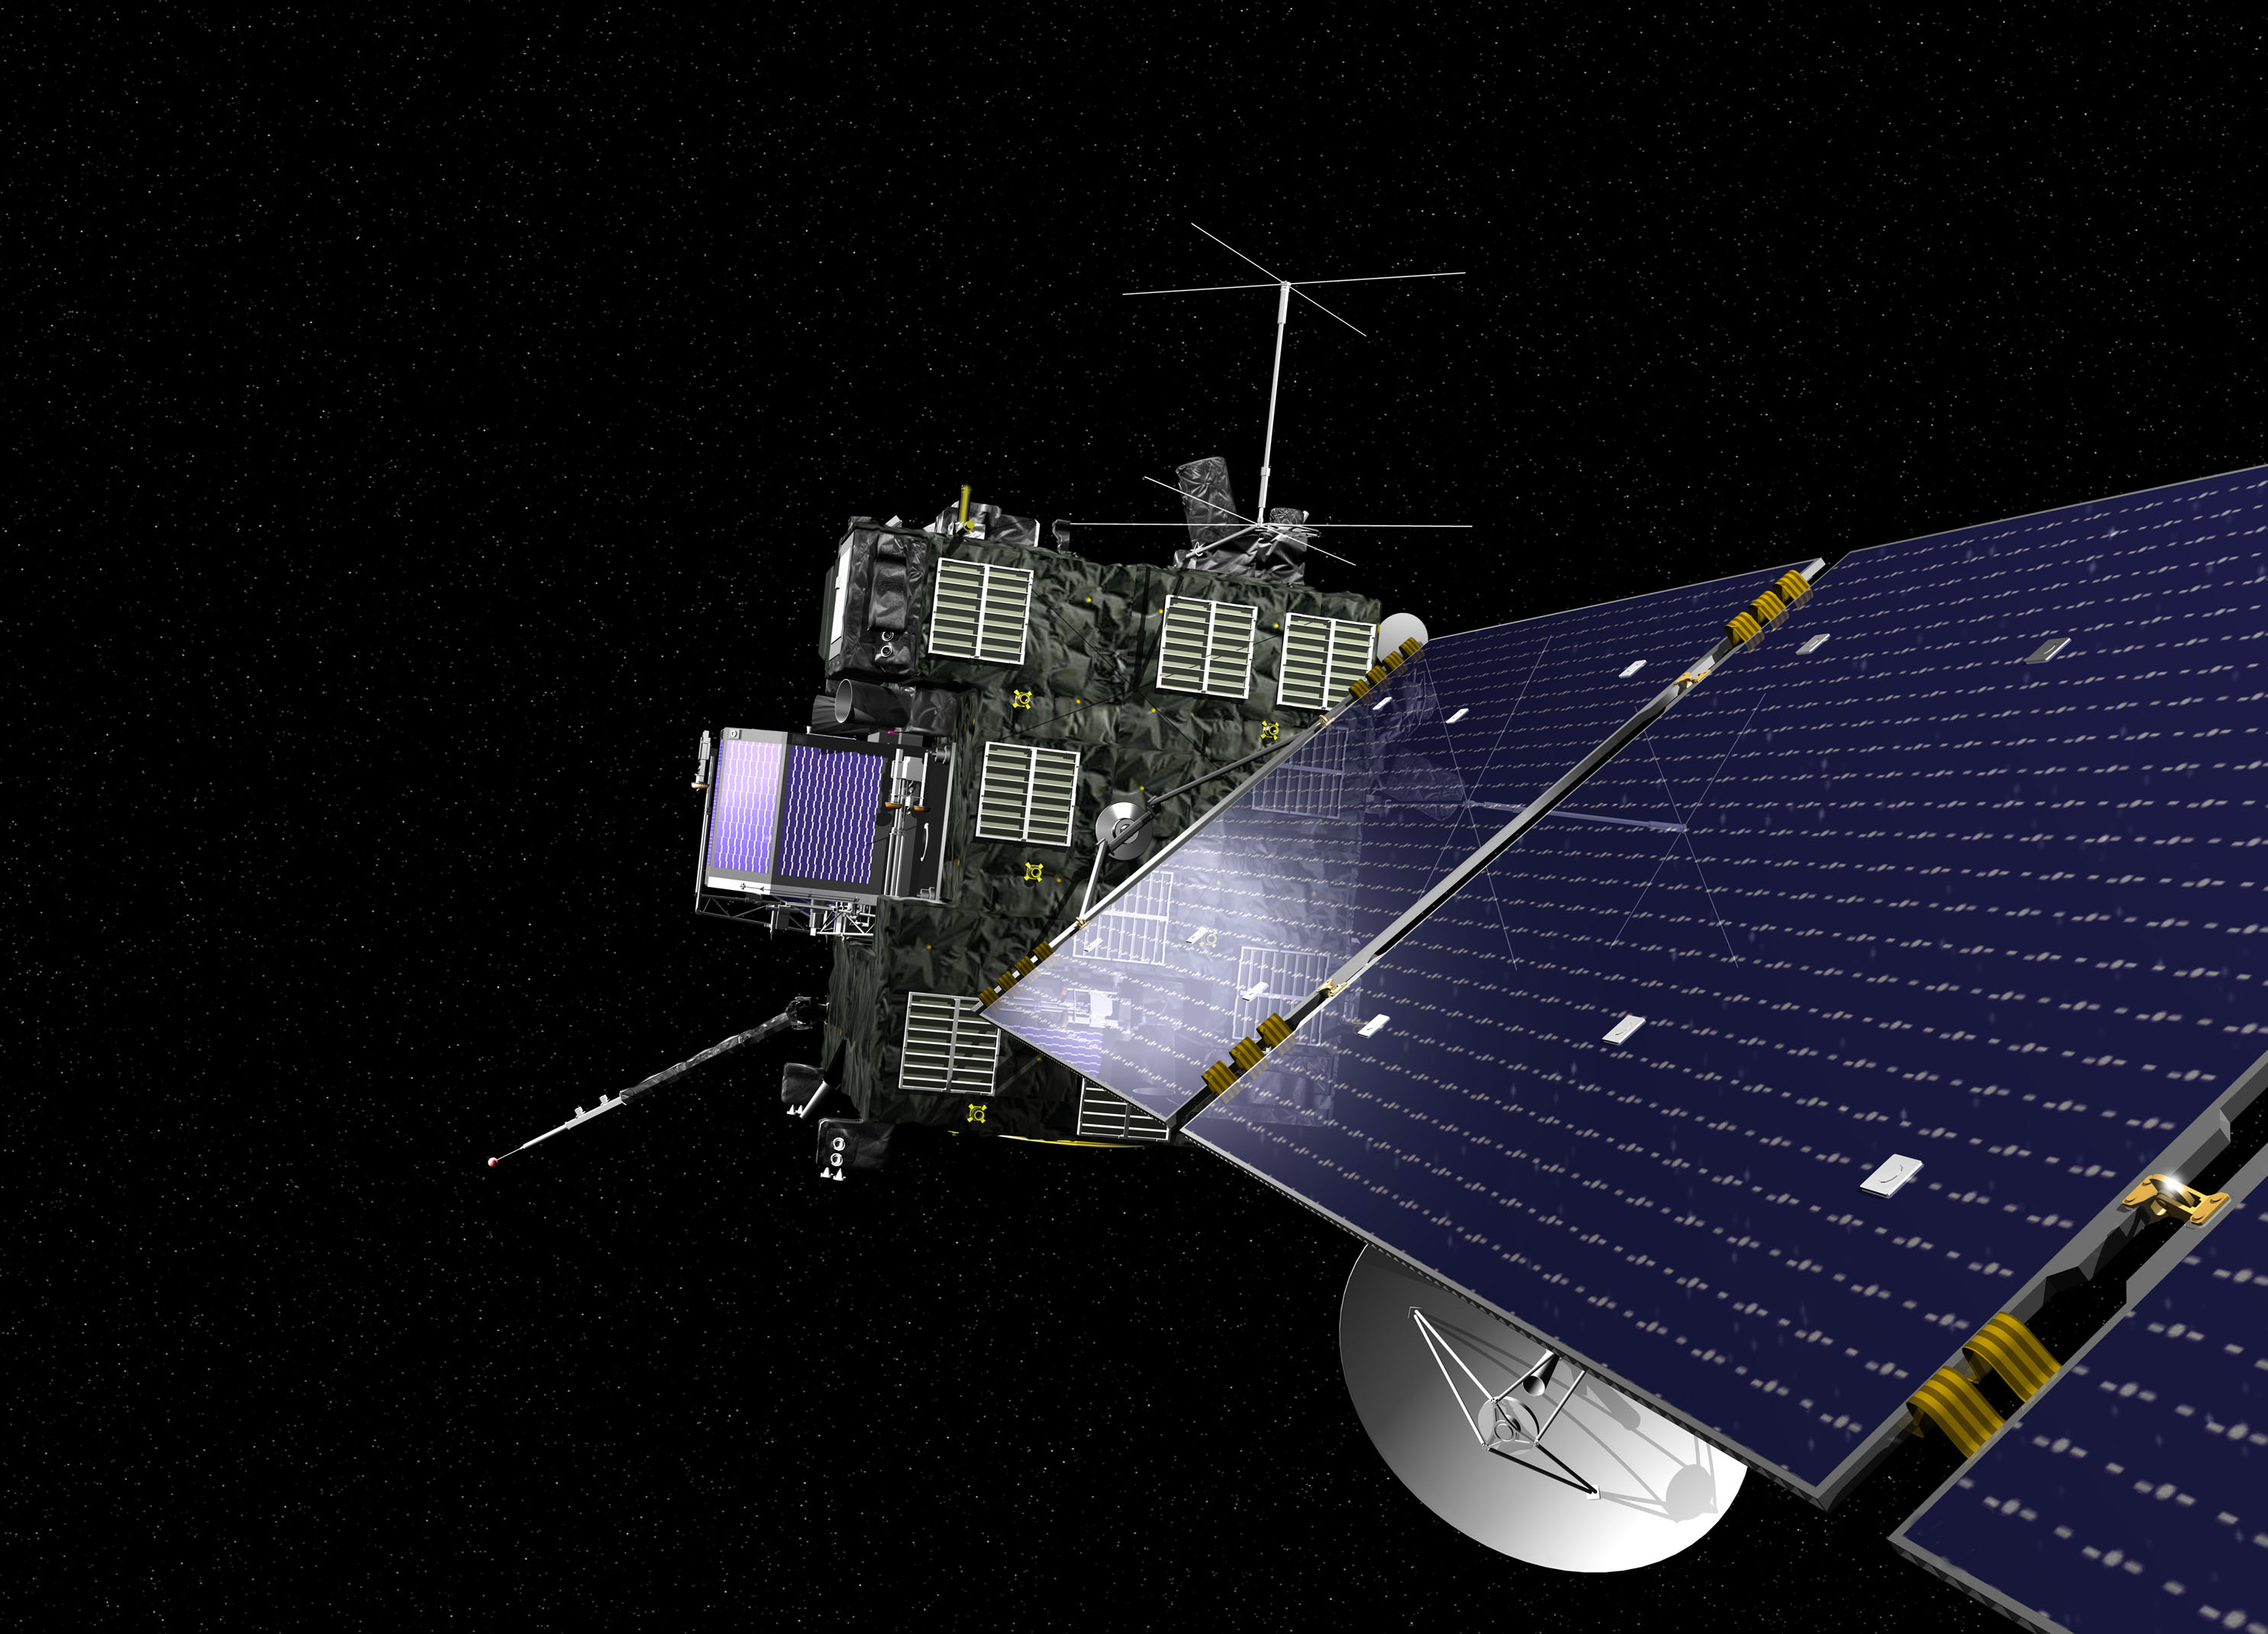 Space in Images - 2011 - 05 - ESA's Rosetta mission relies ...